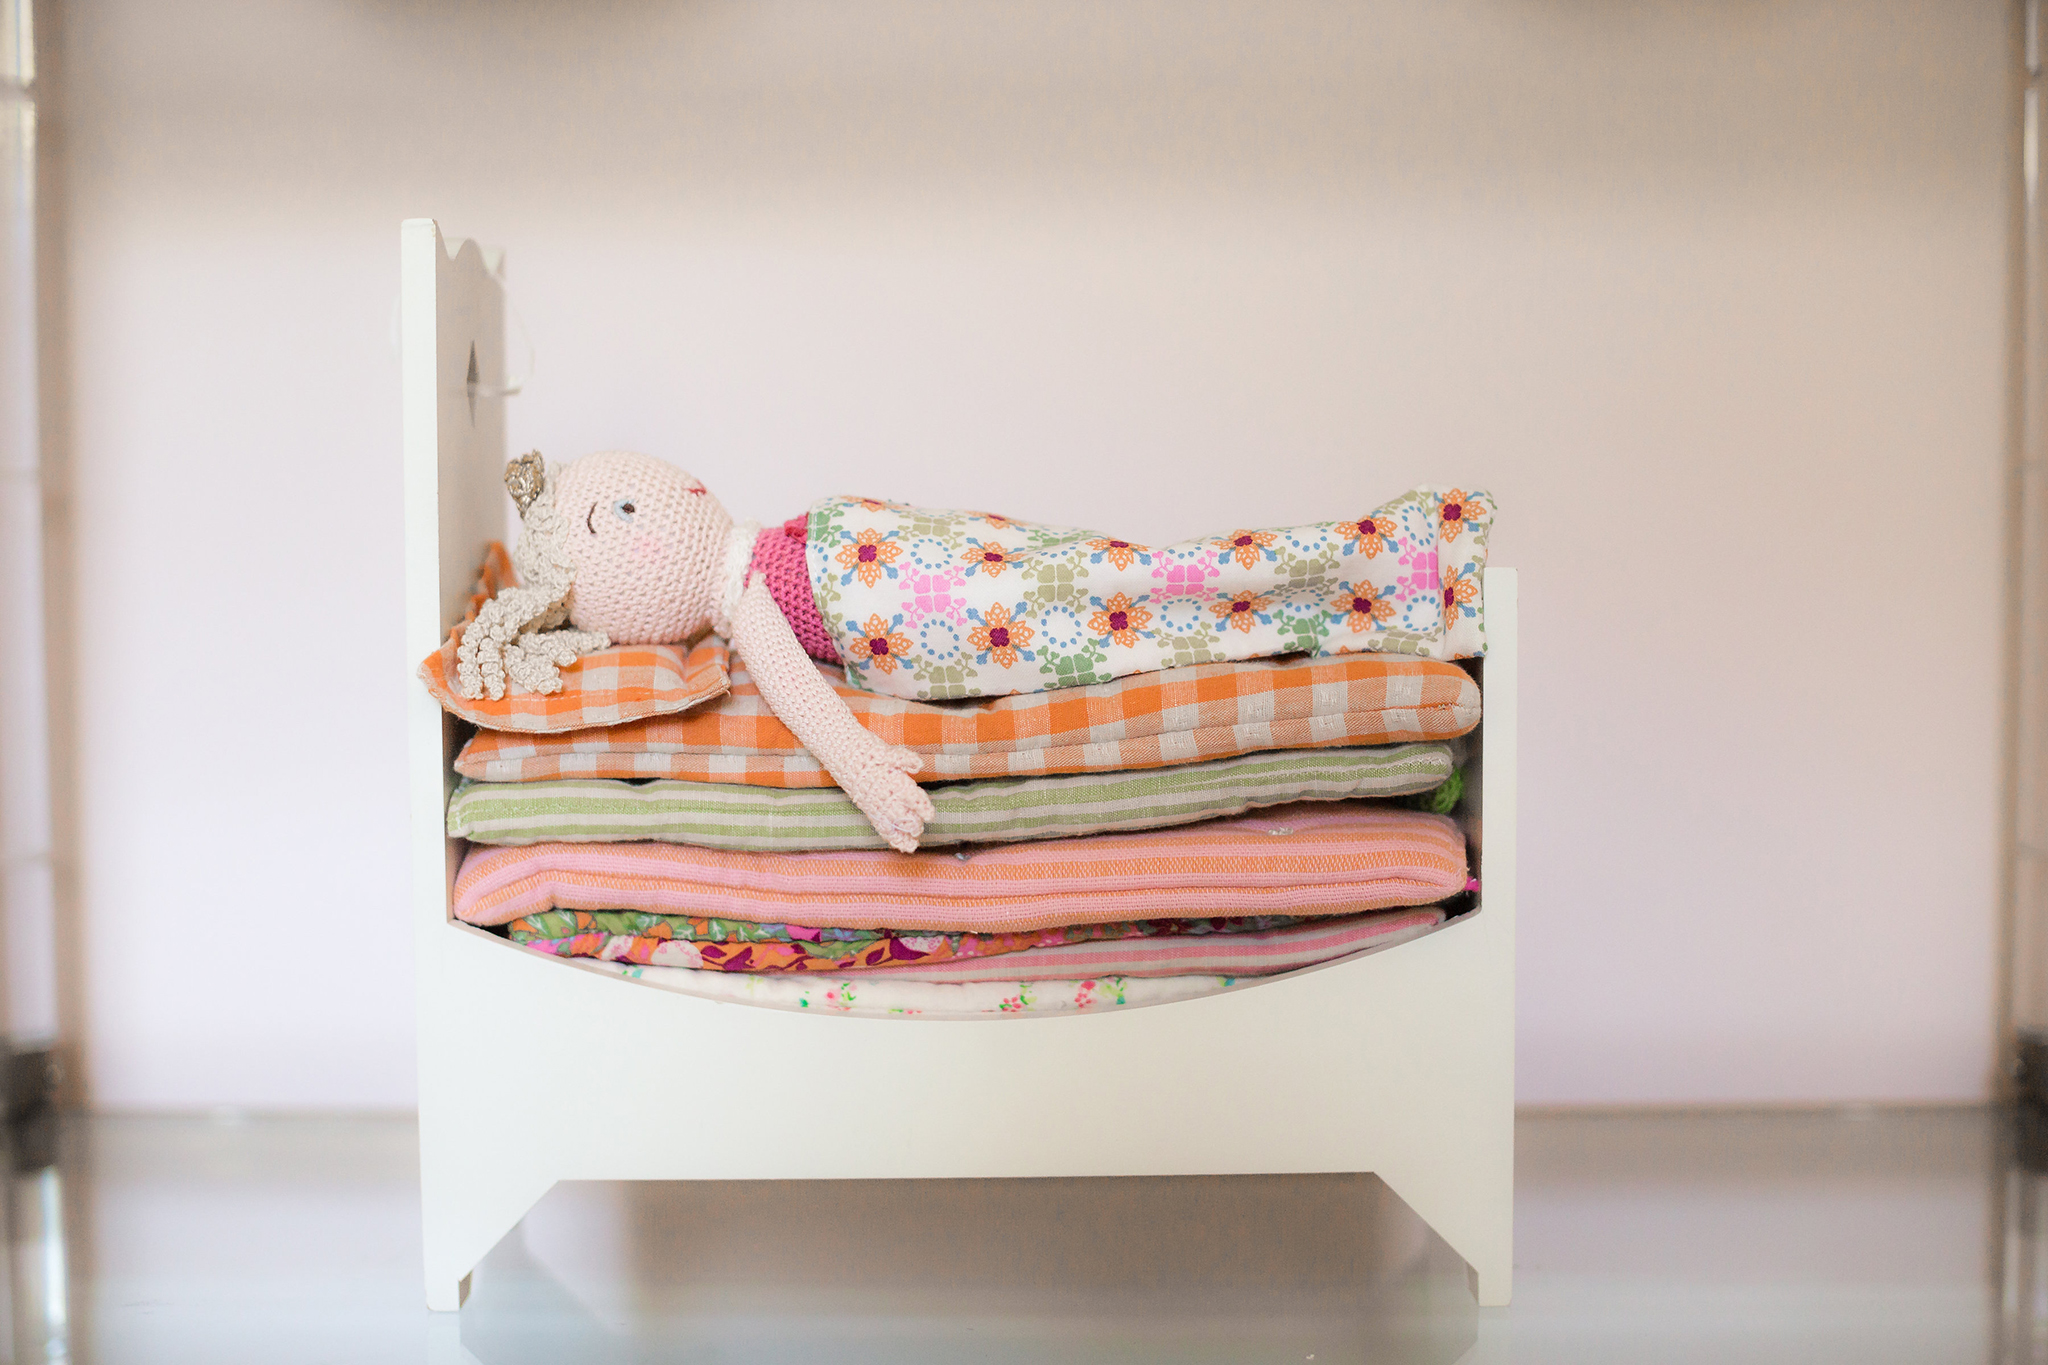 Jenni Pulos Nursery with Princess and the Pea Doll